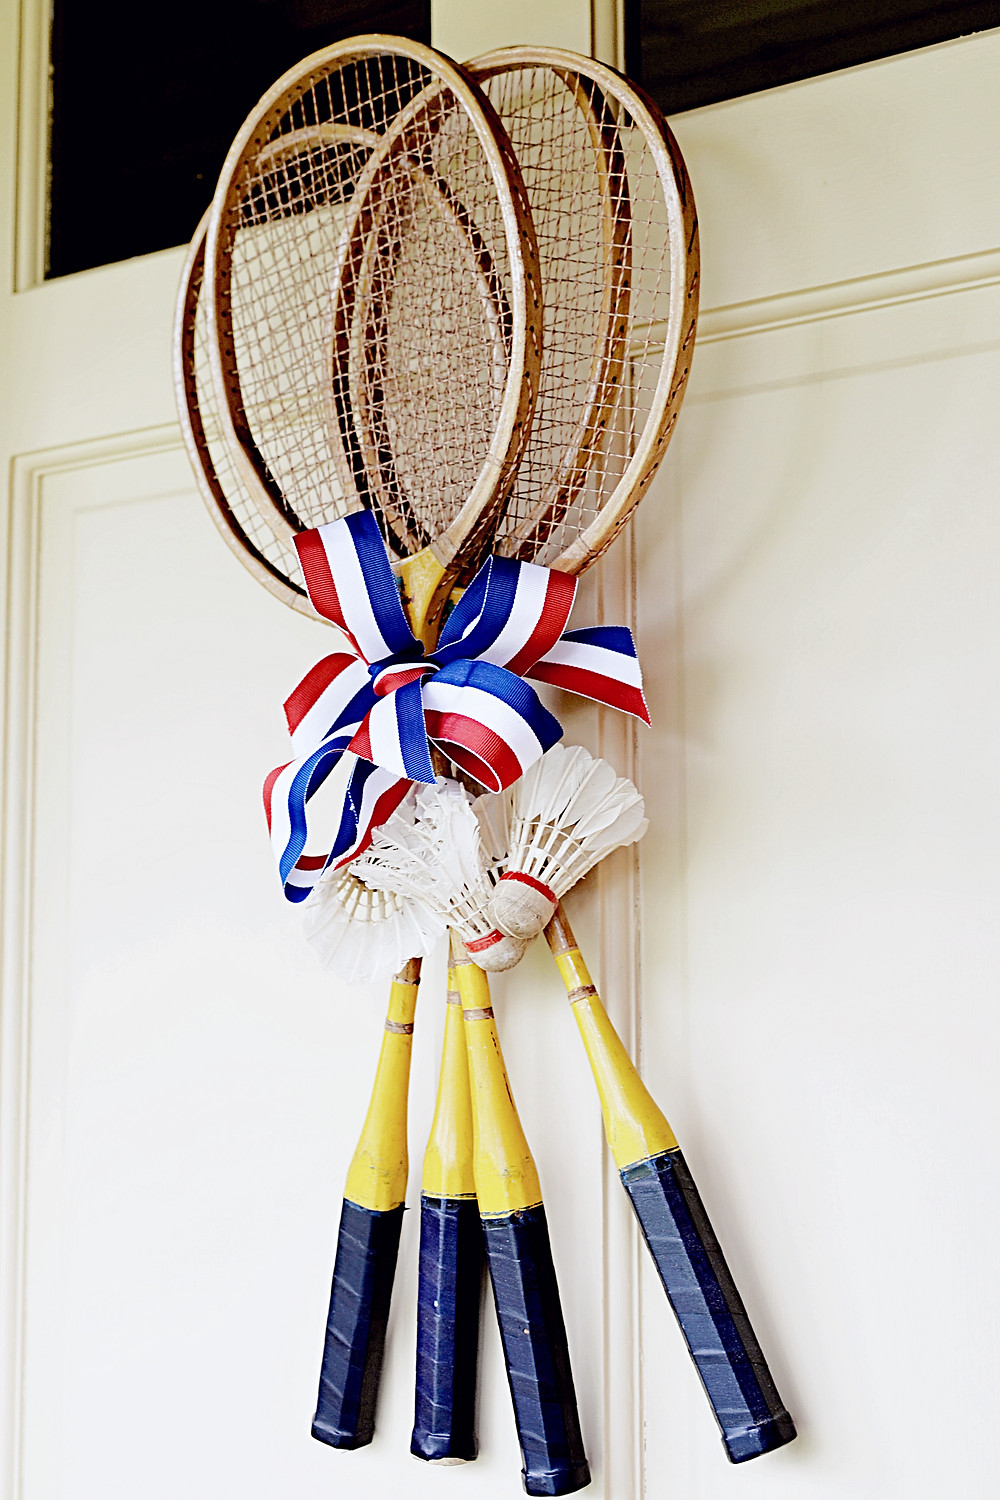 Vintage badminton rackets w/ vintage birdies and red, white and blue ribbon.